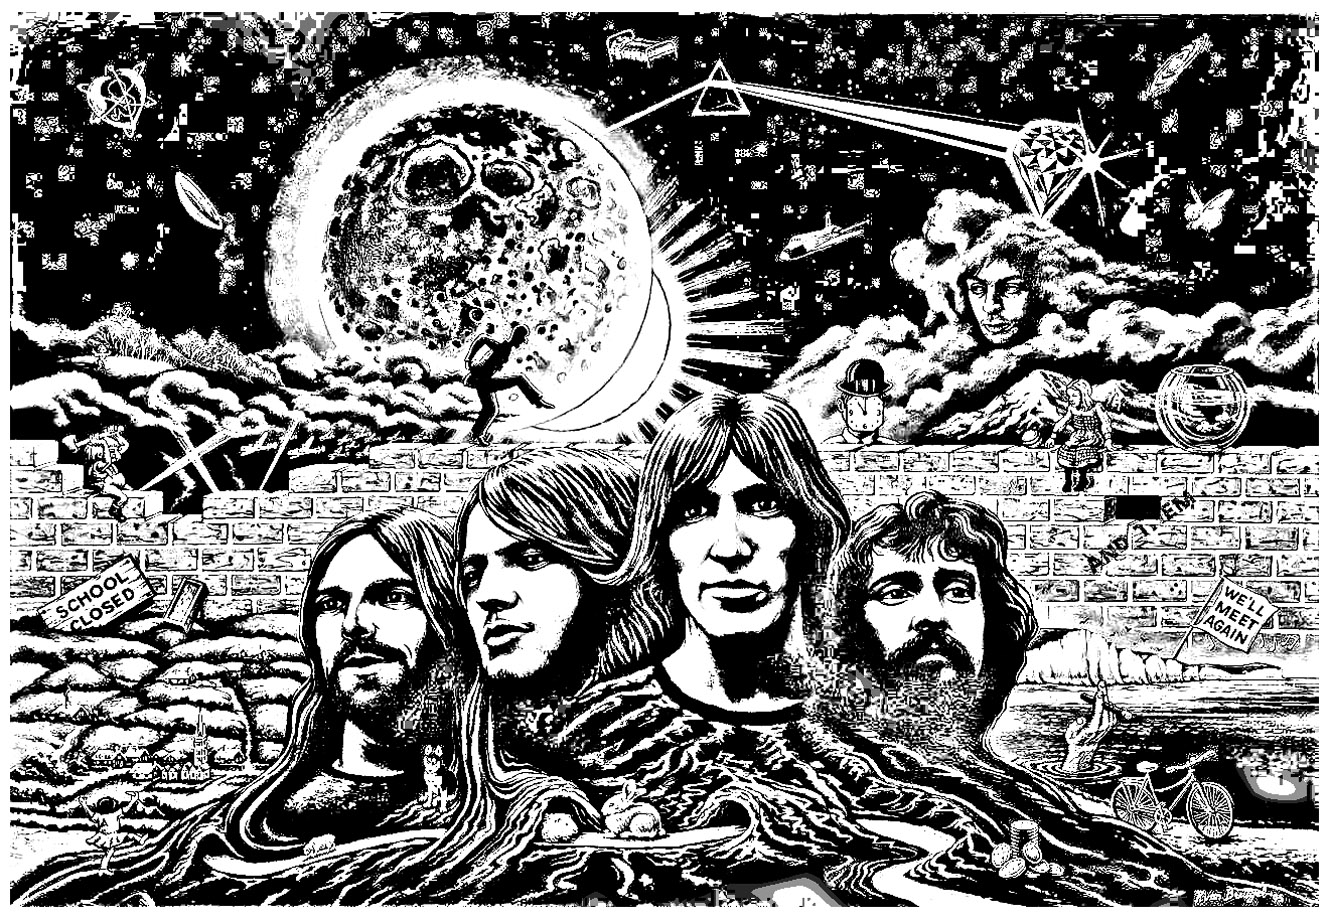 Psychedelic  Coloring pages for adults  coloringpinkfloyd